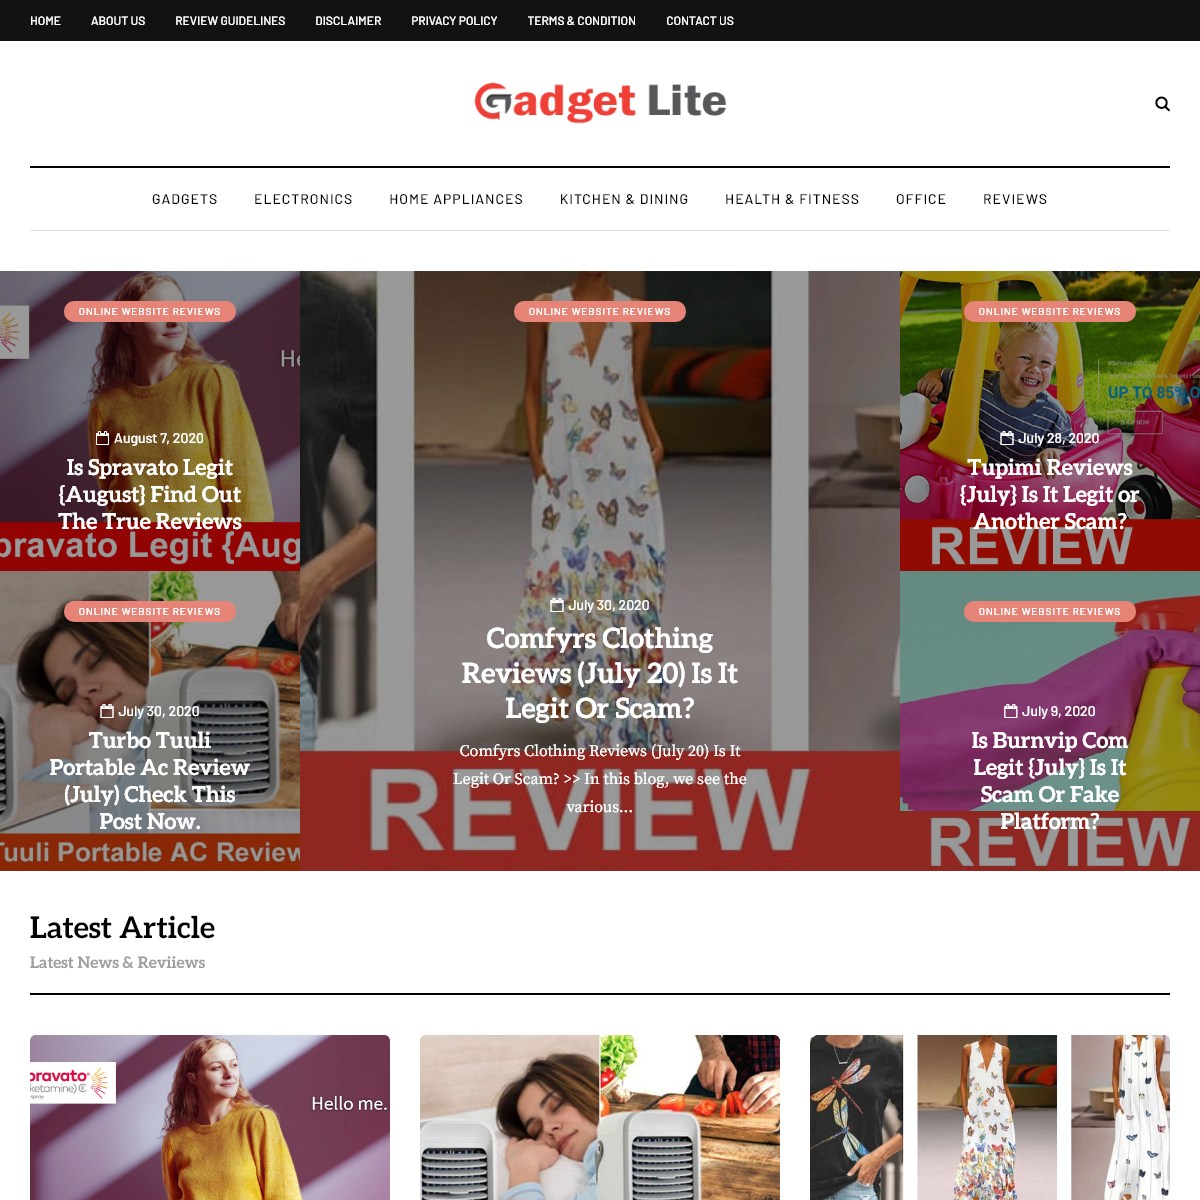 GadgetLite Reviews - Latest Gadgets And Technology News!